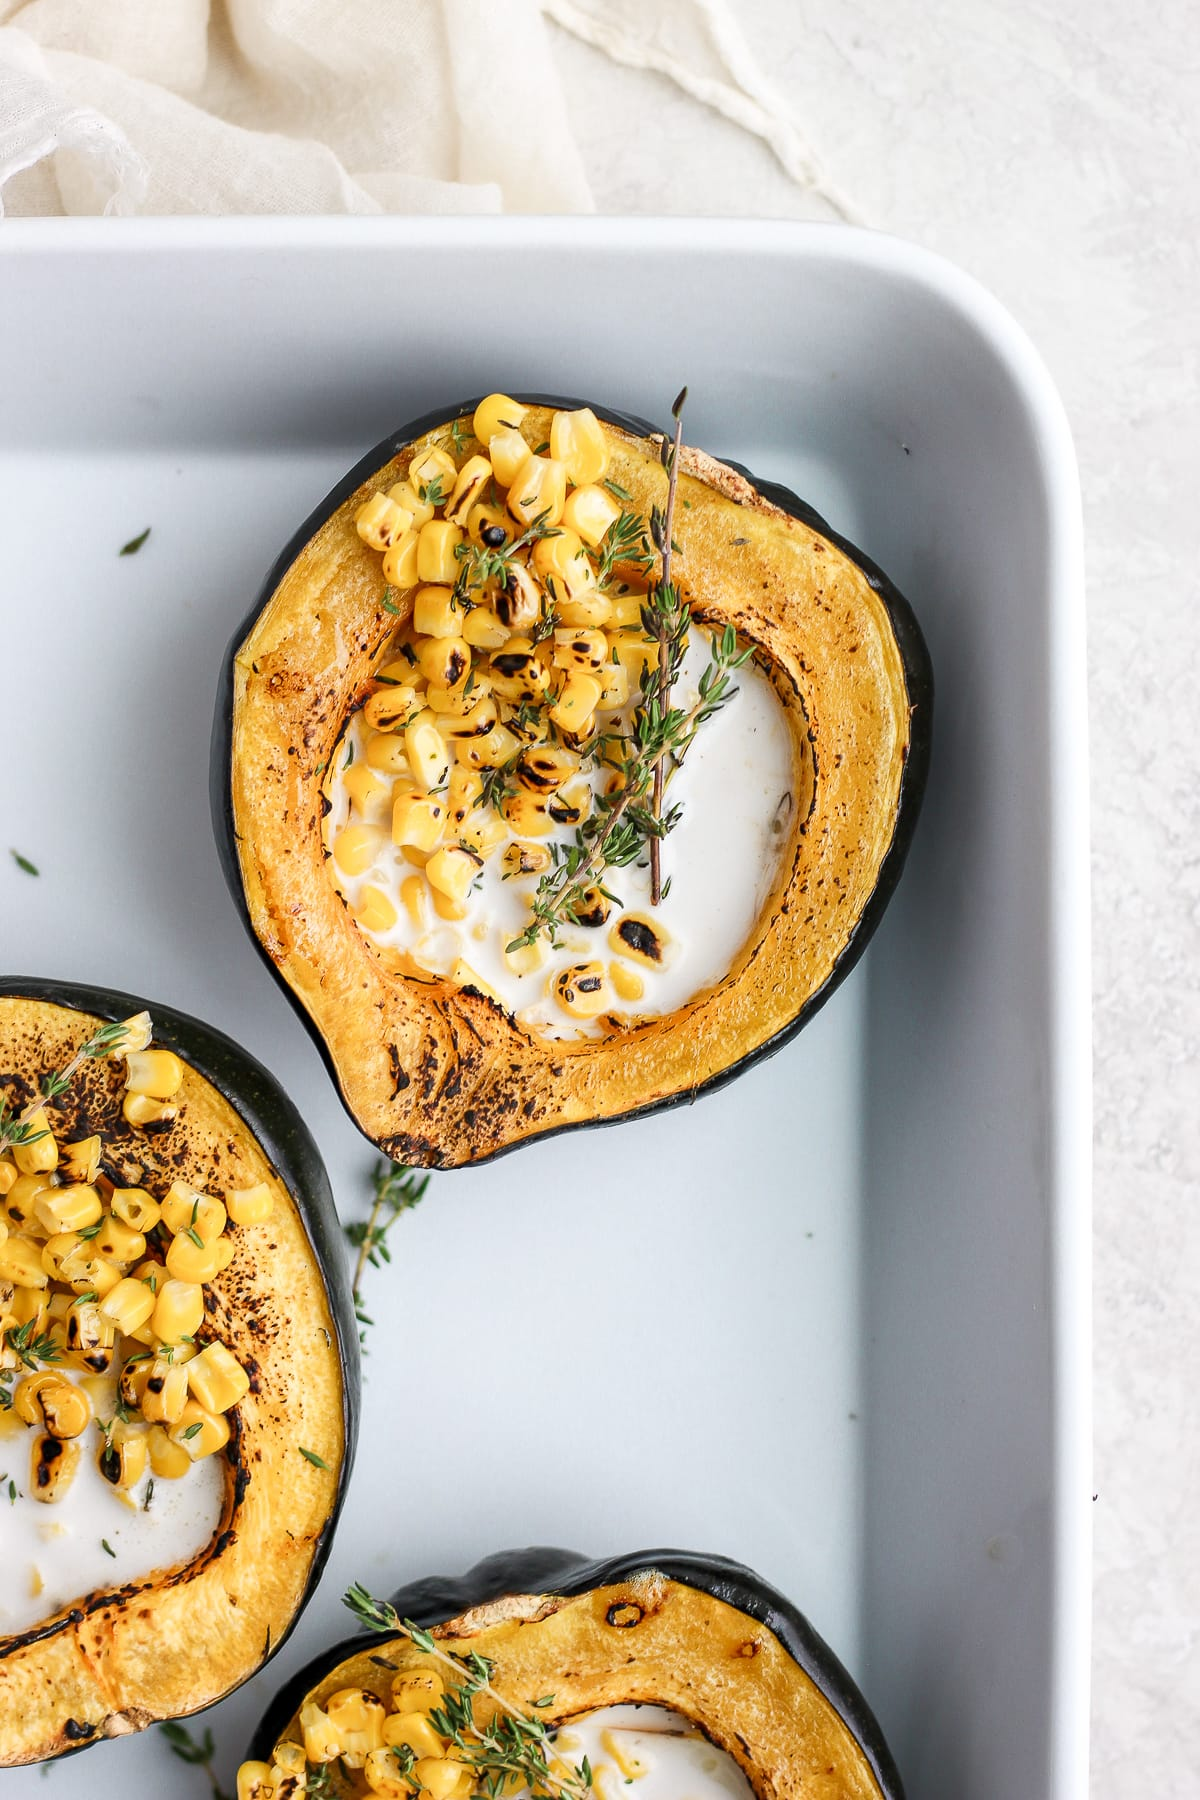 Baked Creamy Acorn Squash - a creamy and delicious side dish that is dairy-free, vegan and gluten-free! #acornsquash #dairyfreerecipes #dairyfree #vegan #plantbased #creamedcorn #foodphotography #christmasdinner #thanksgiving